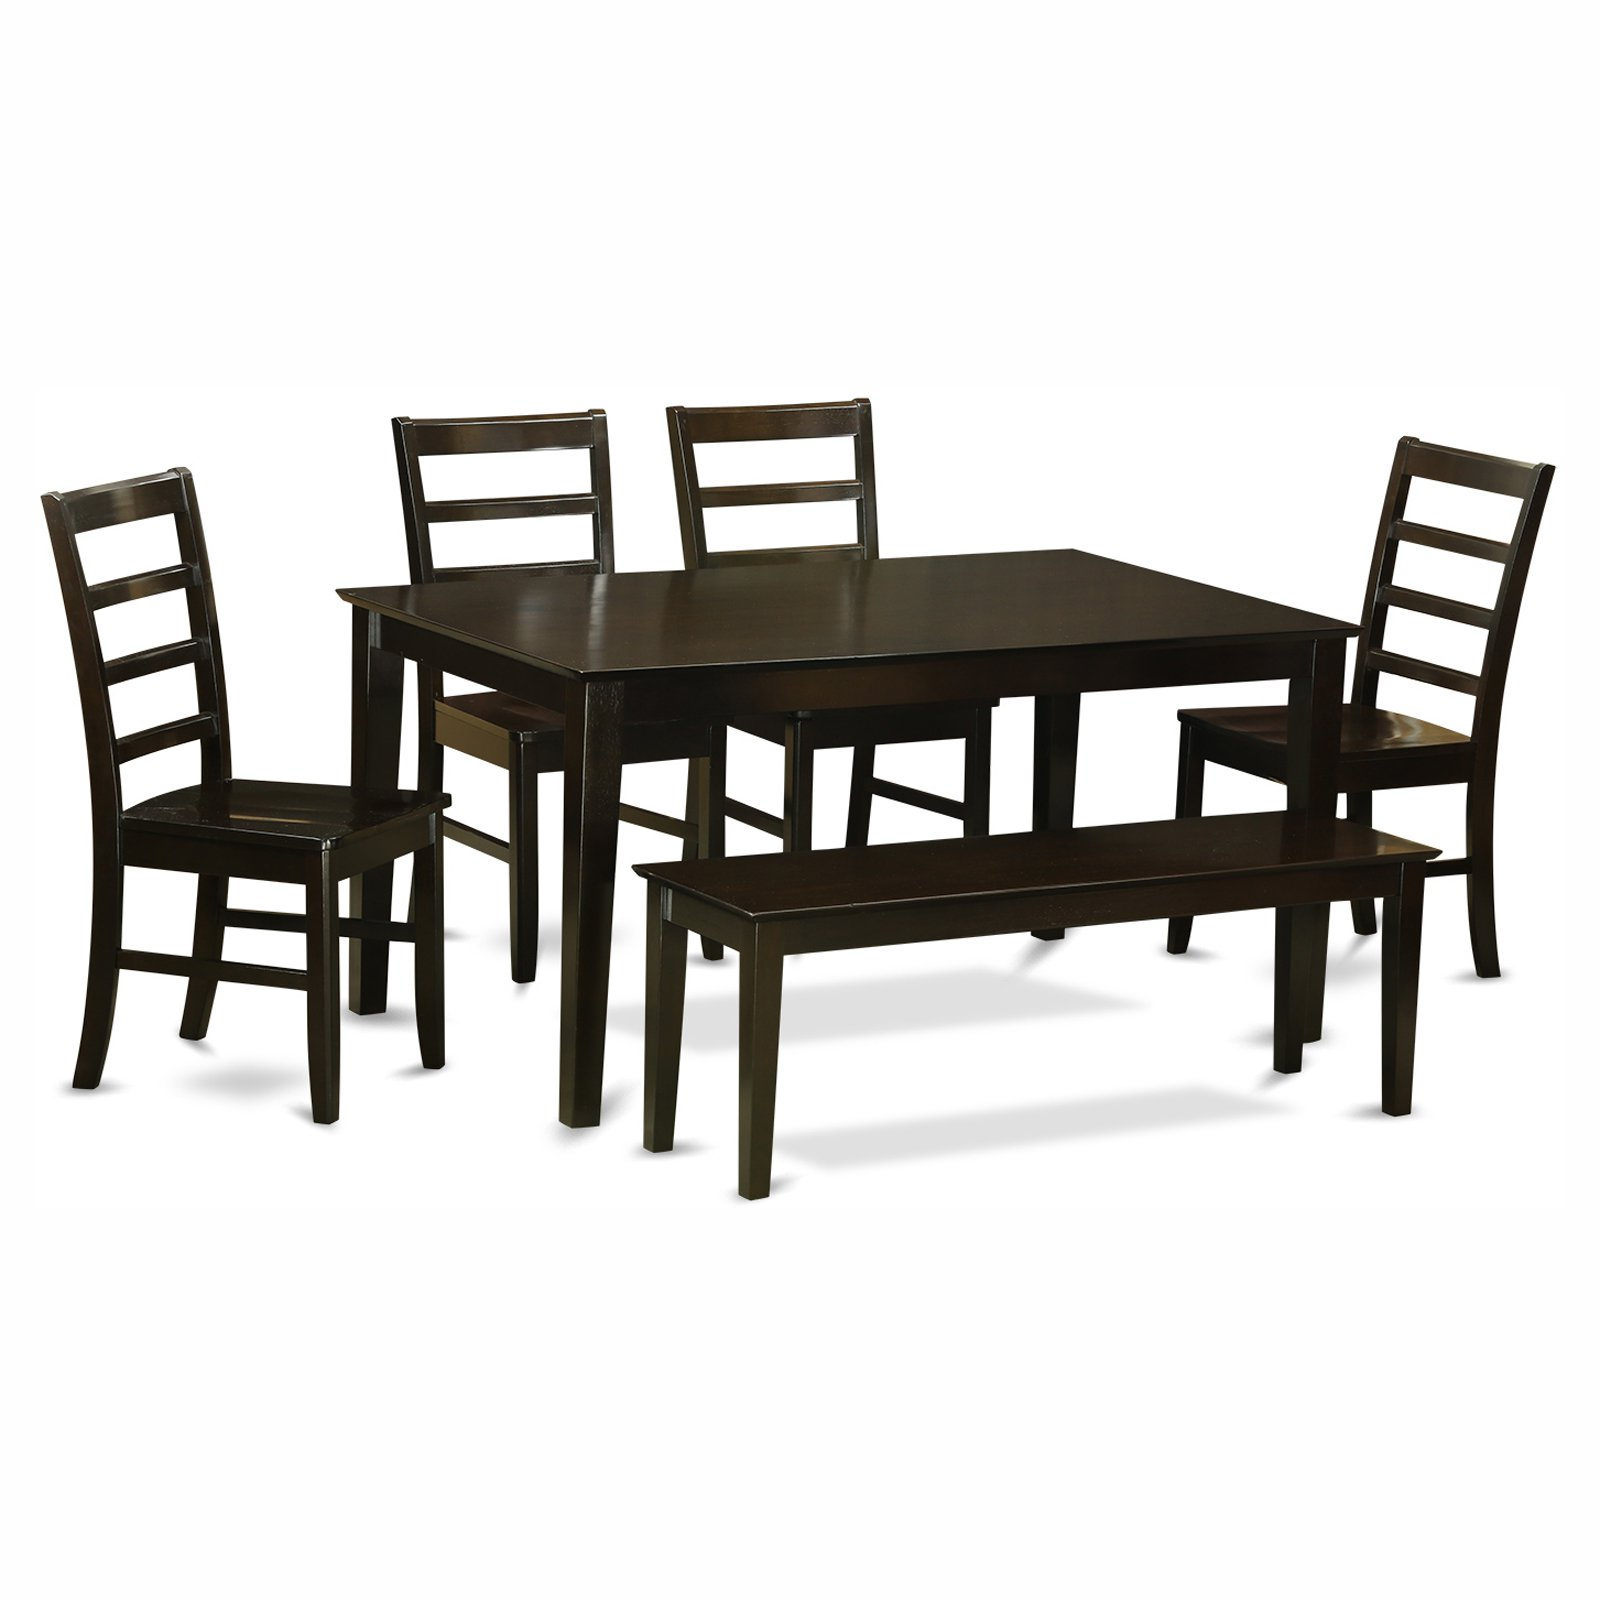 East West Furniture Capris 6 Piece Rectangular Dining Table Set with Parfait Wooden Seat Chairs